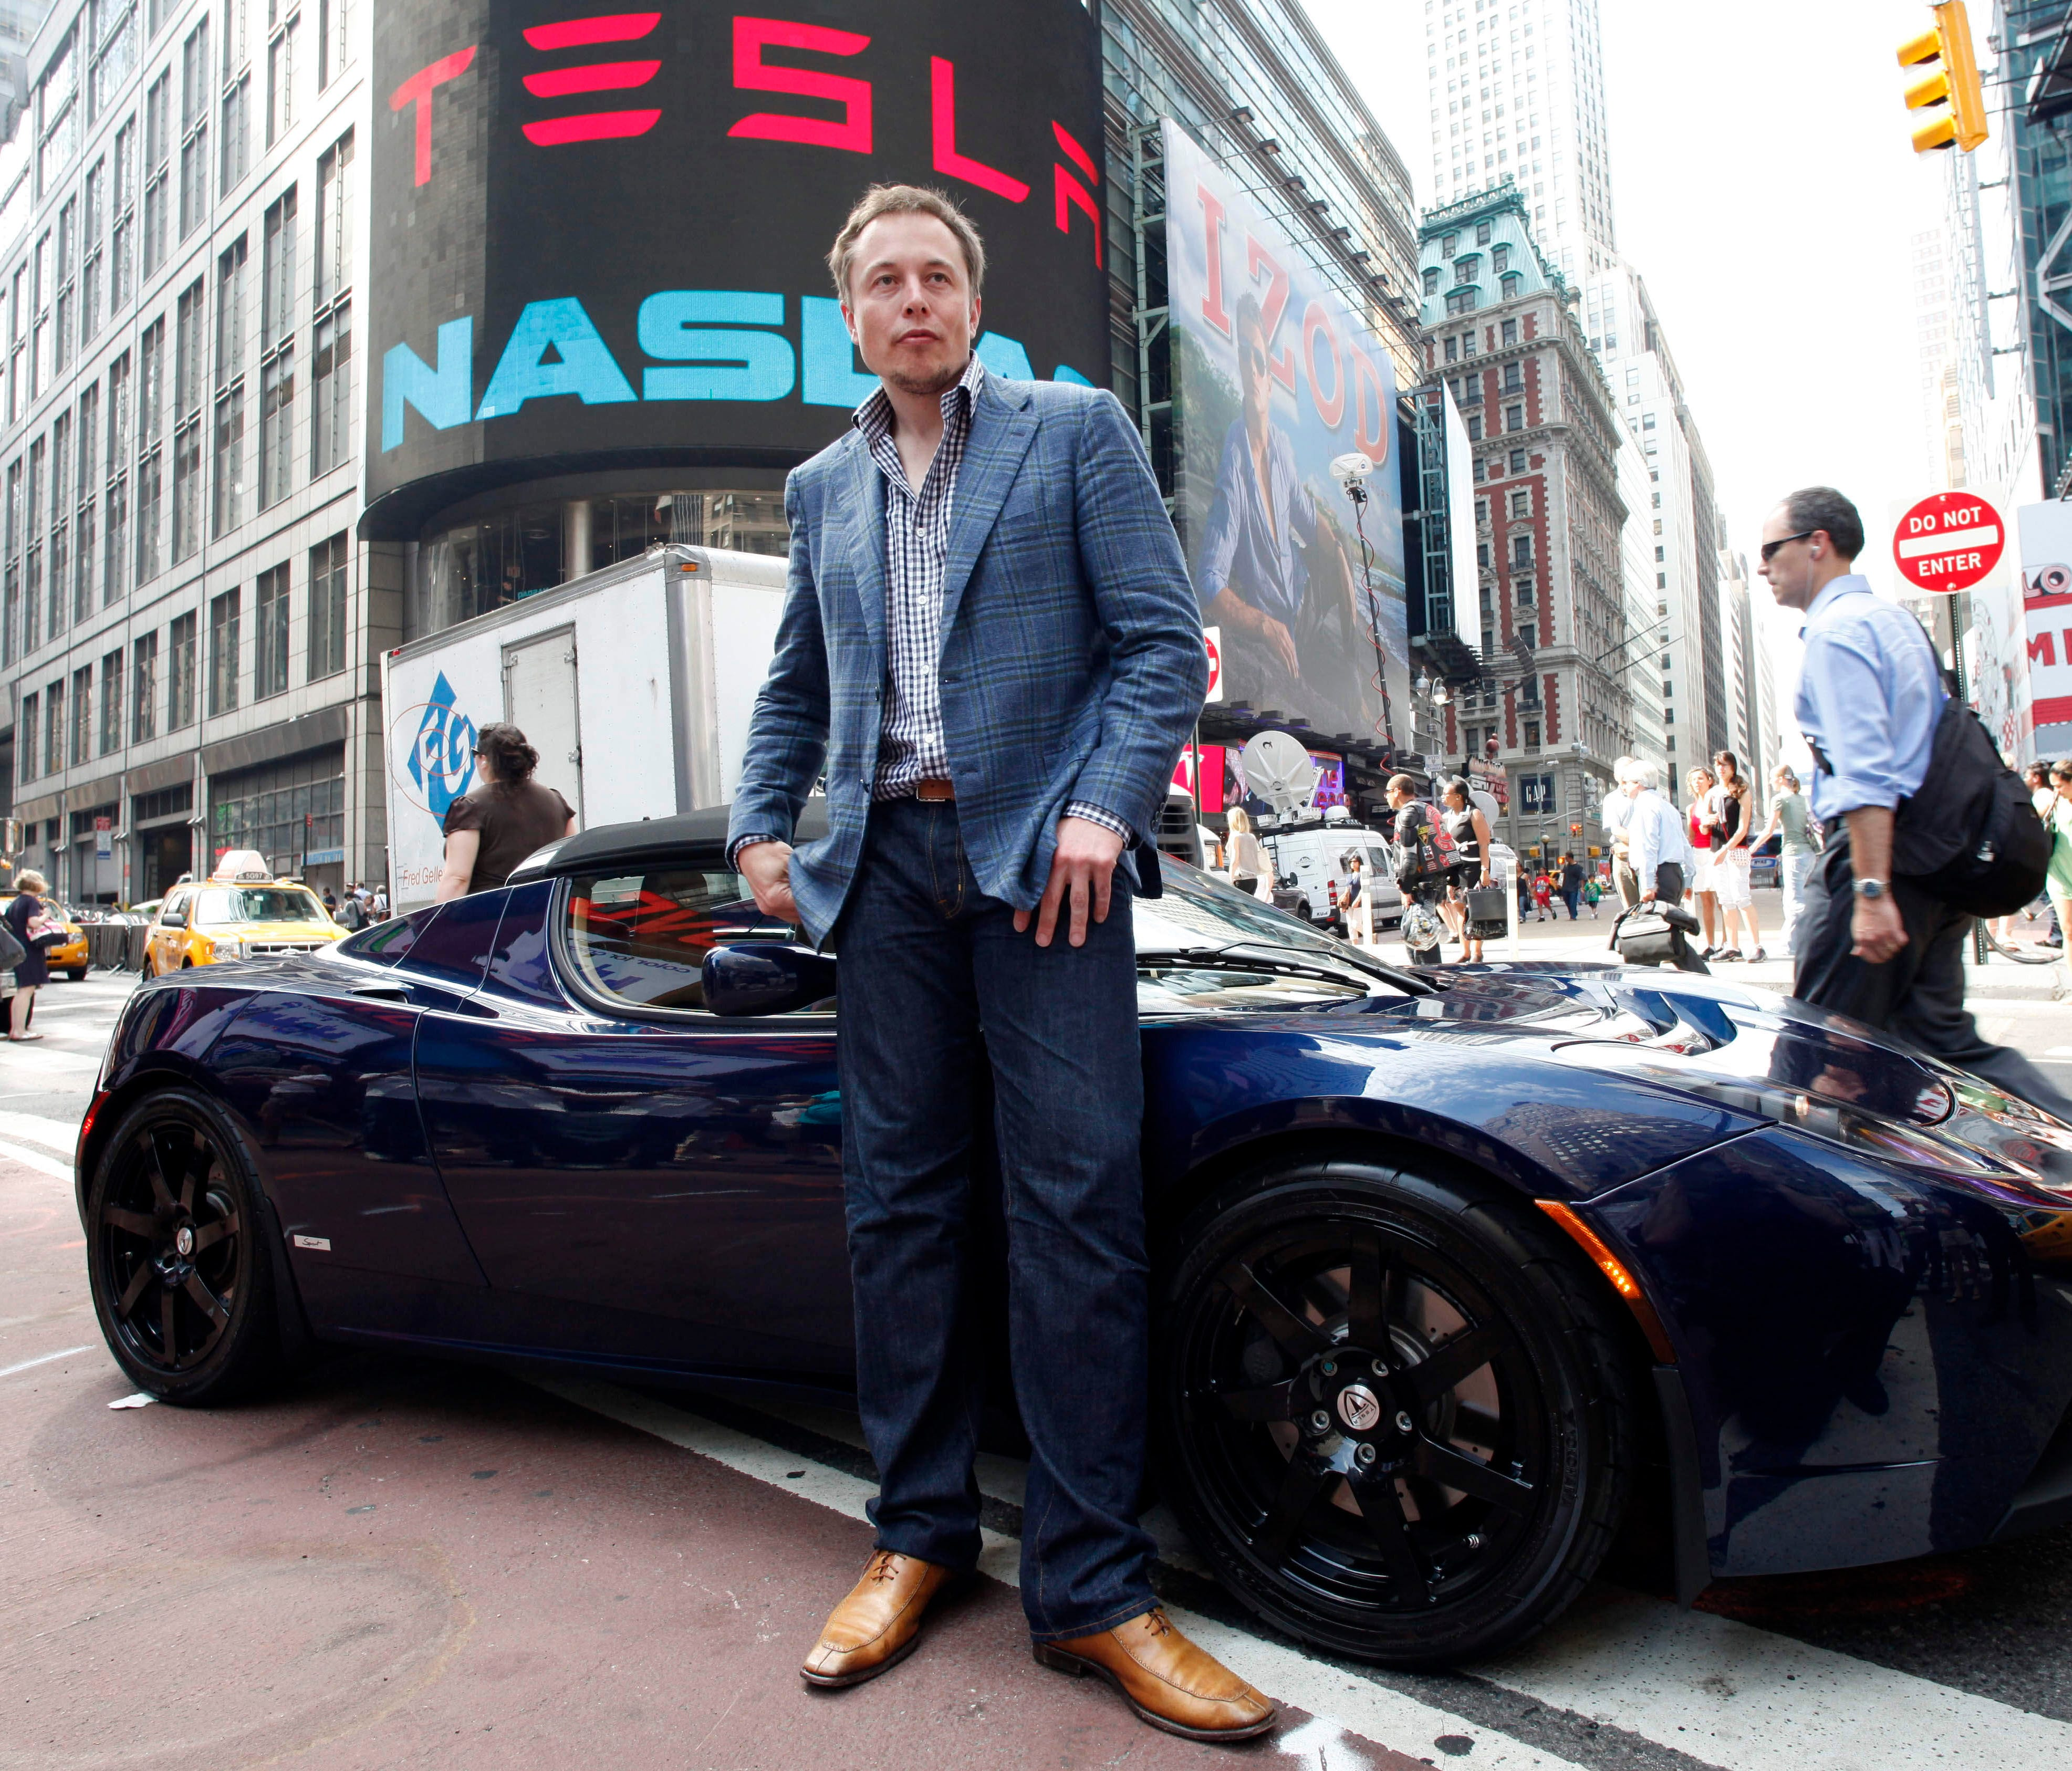 Elon Musk, CEO of Tesla Motors, poses with a Tesla car in front of Nasdaq following the electric automakerís initial public offering on June, 29, 2010, in New York.